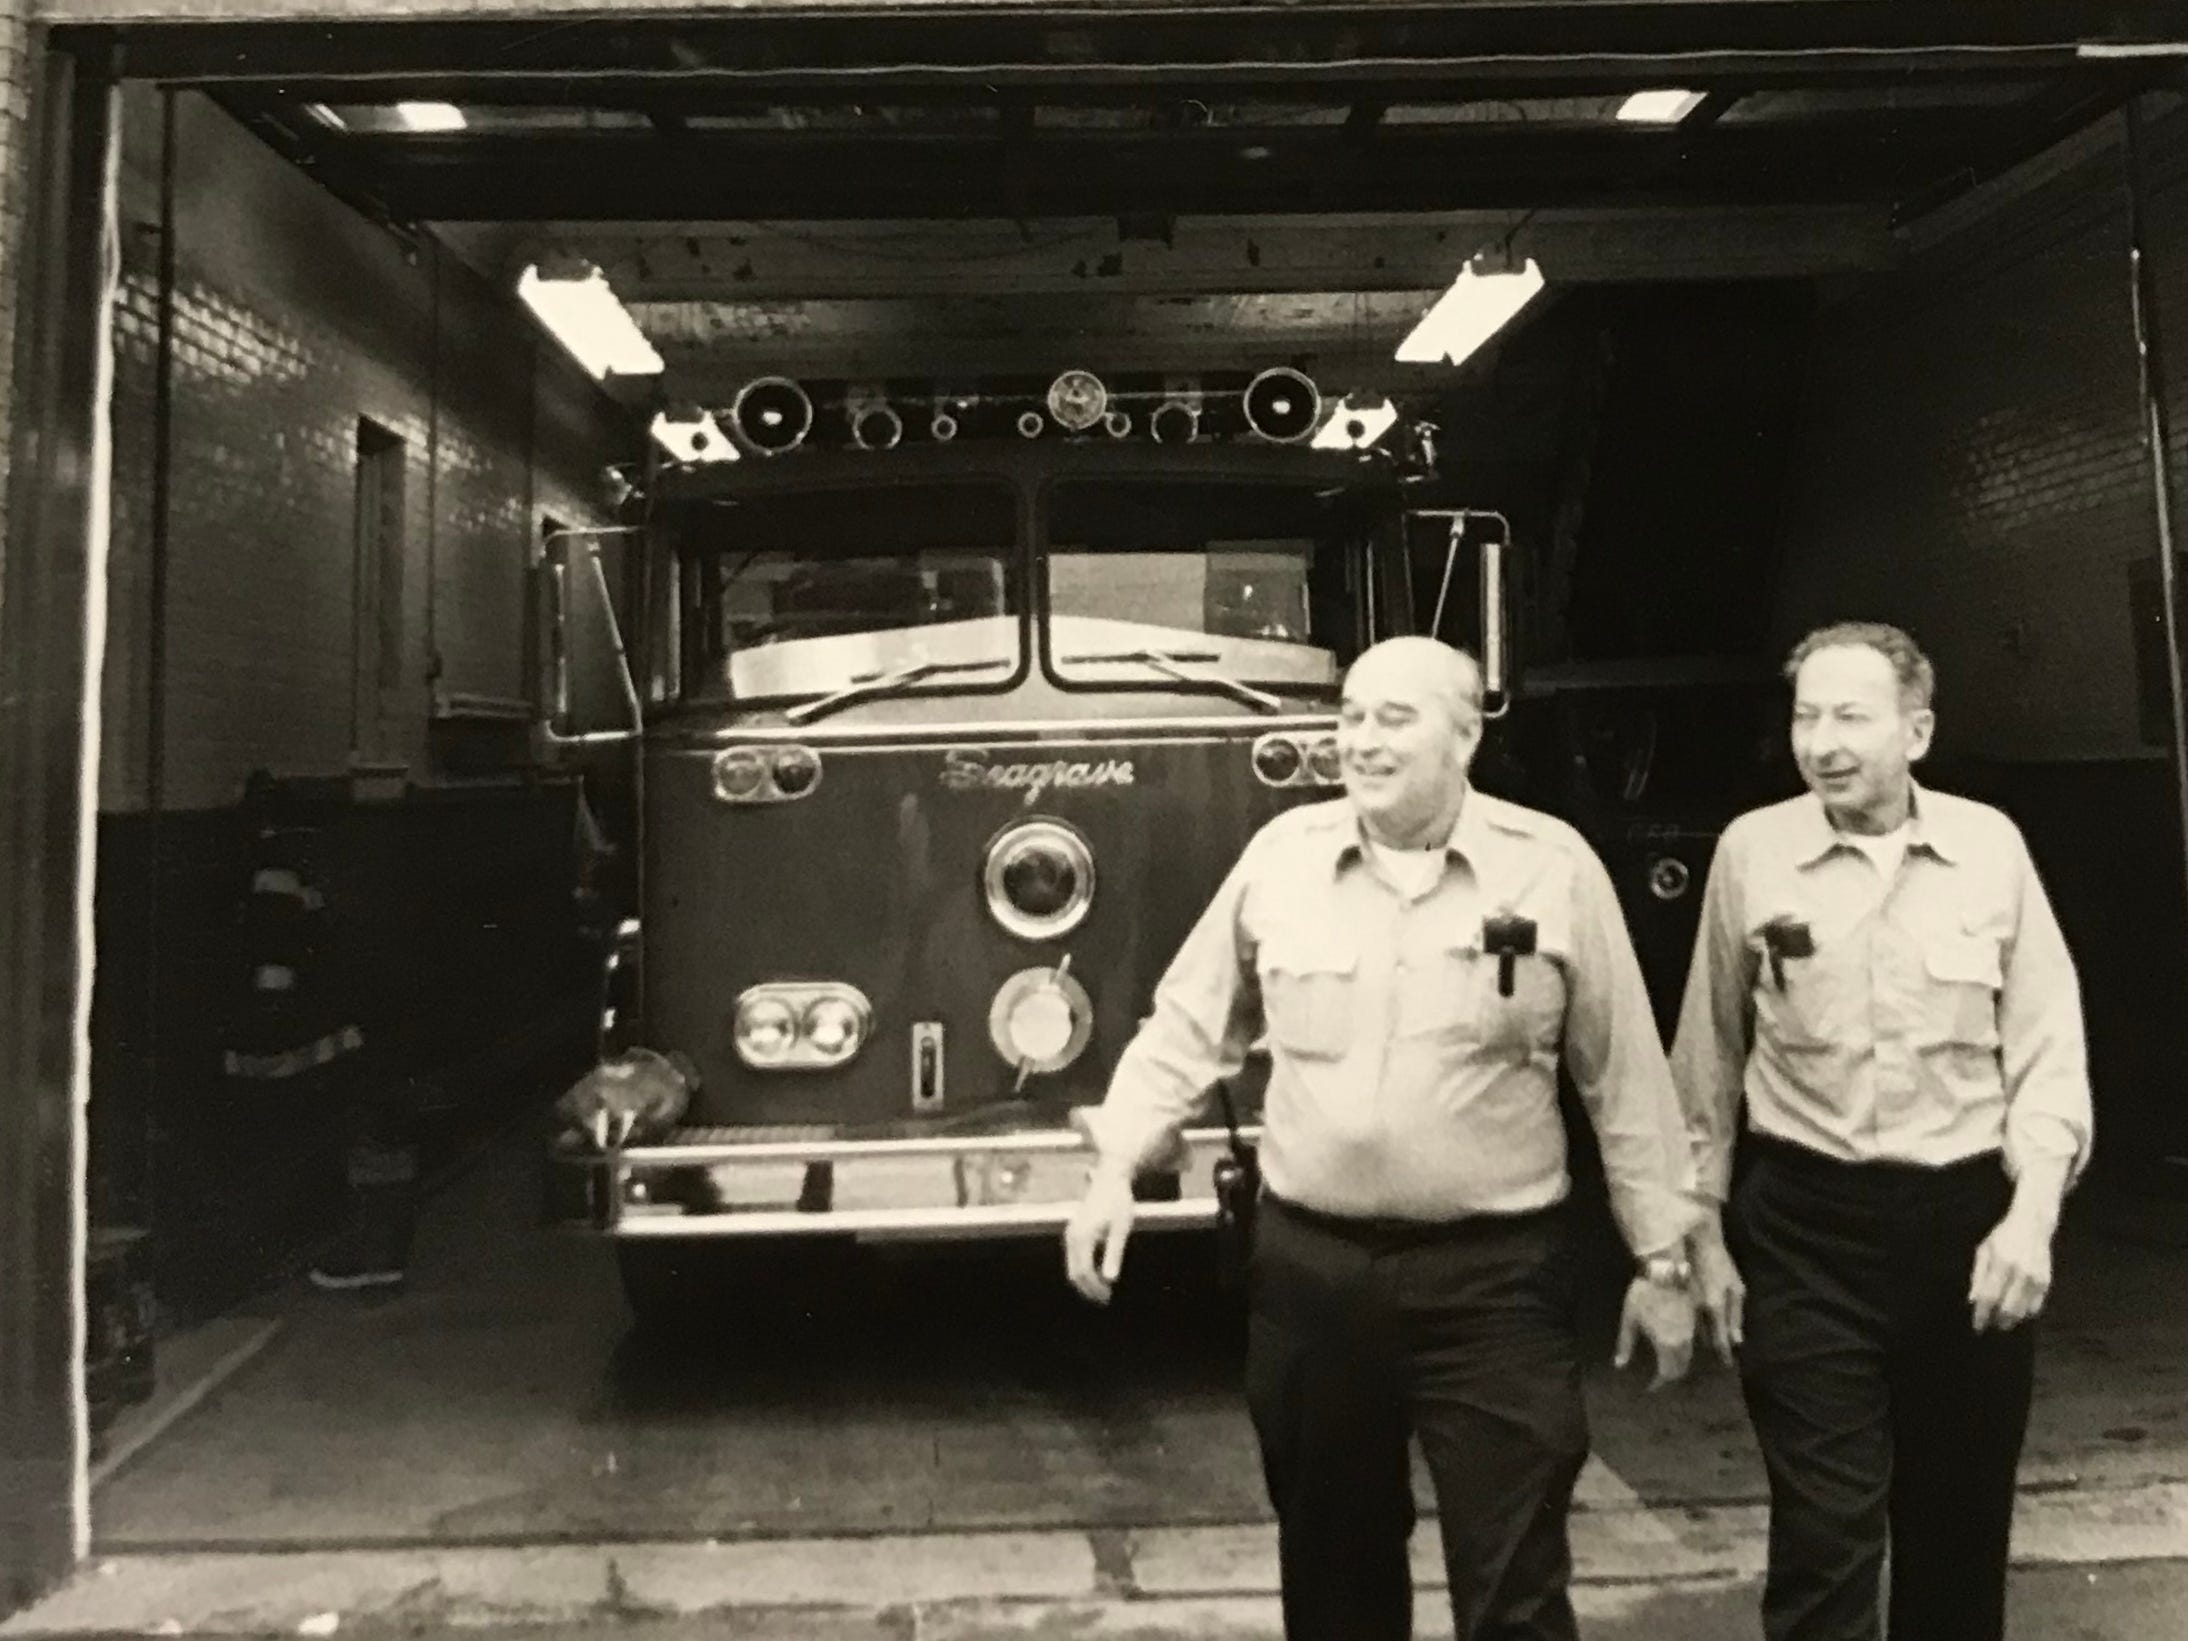 In April 1982, Howard Letts Jr., left, and Cliff Arledge walk away from 30 years of firefighting for the Chillicothe Fire Department as fellow firemen call farewell.